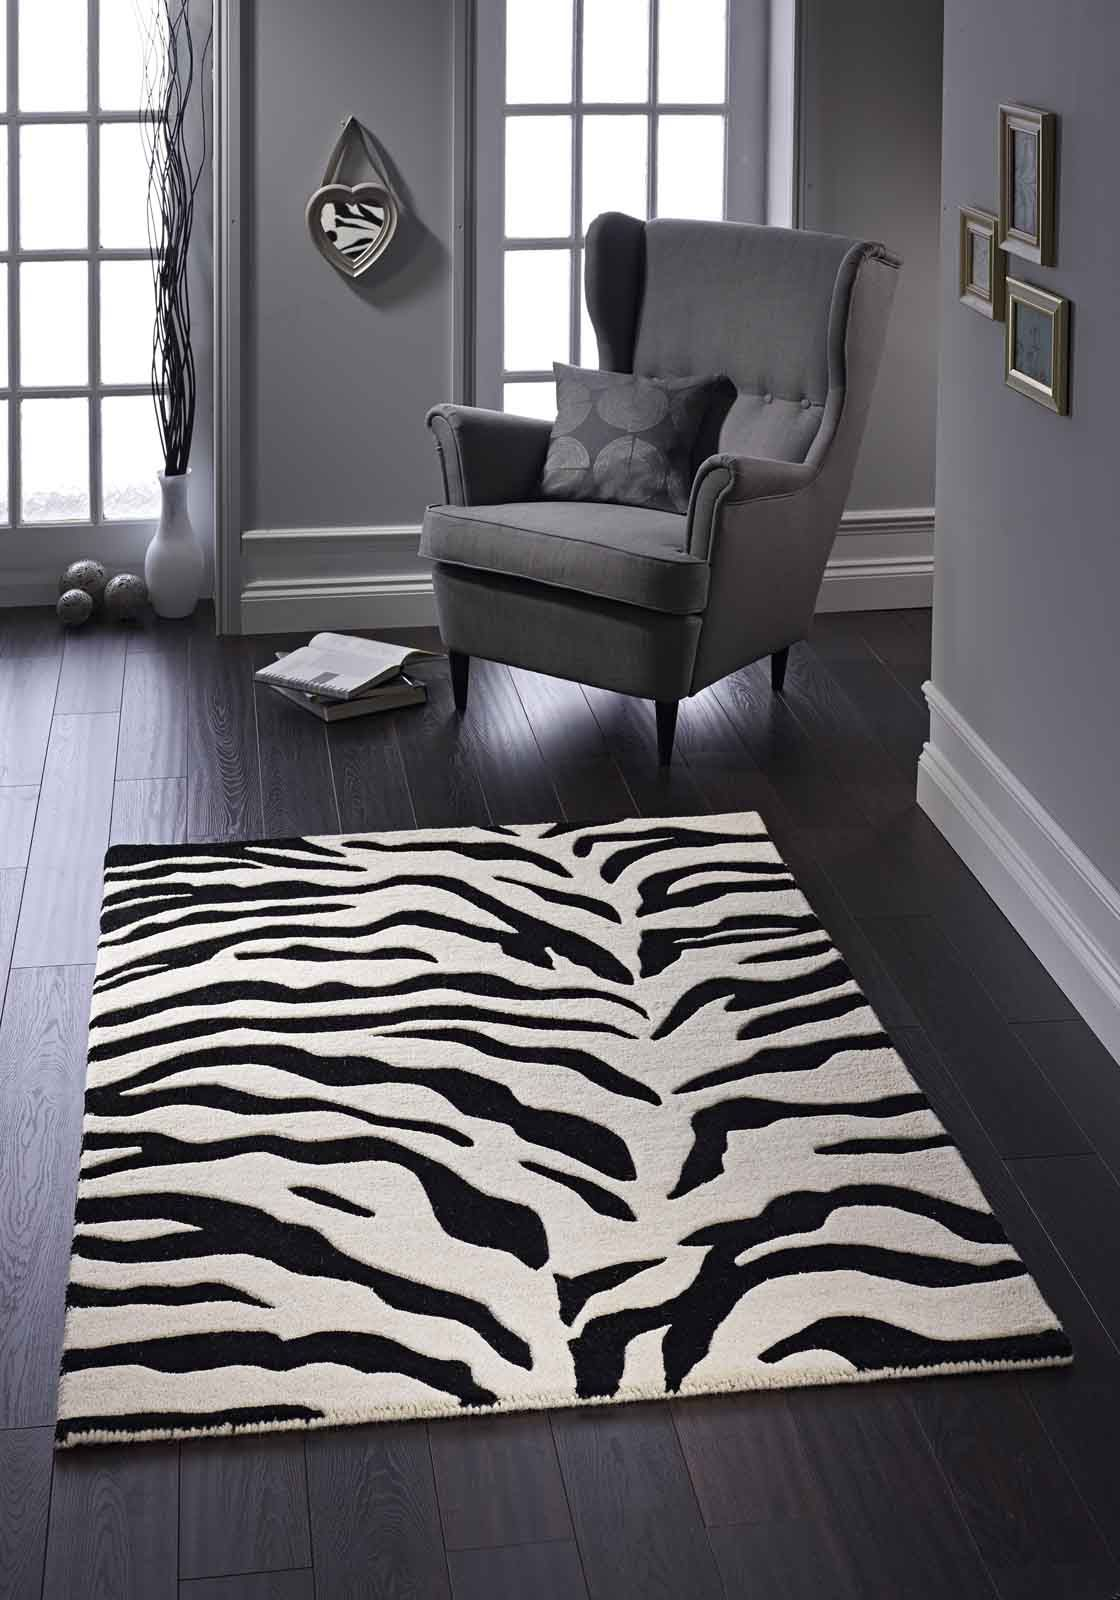 Hallway carpet runners sold by the foot  What a way of bringing nature to your decor Classy Animal Printed